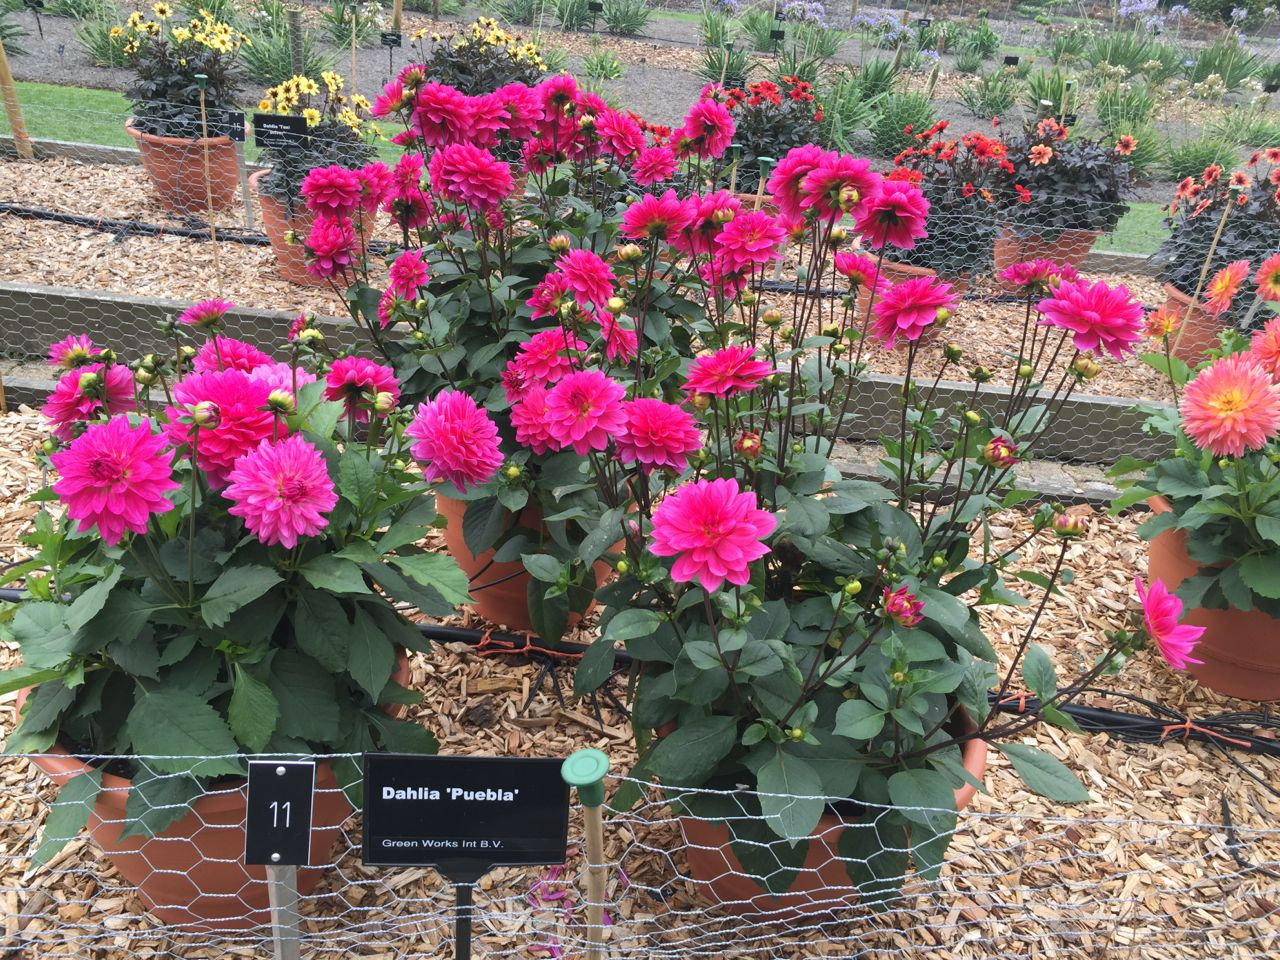 National Dahlia Society Annual Show 2015 Rhs Dahlia